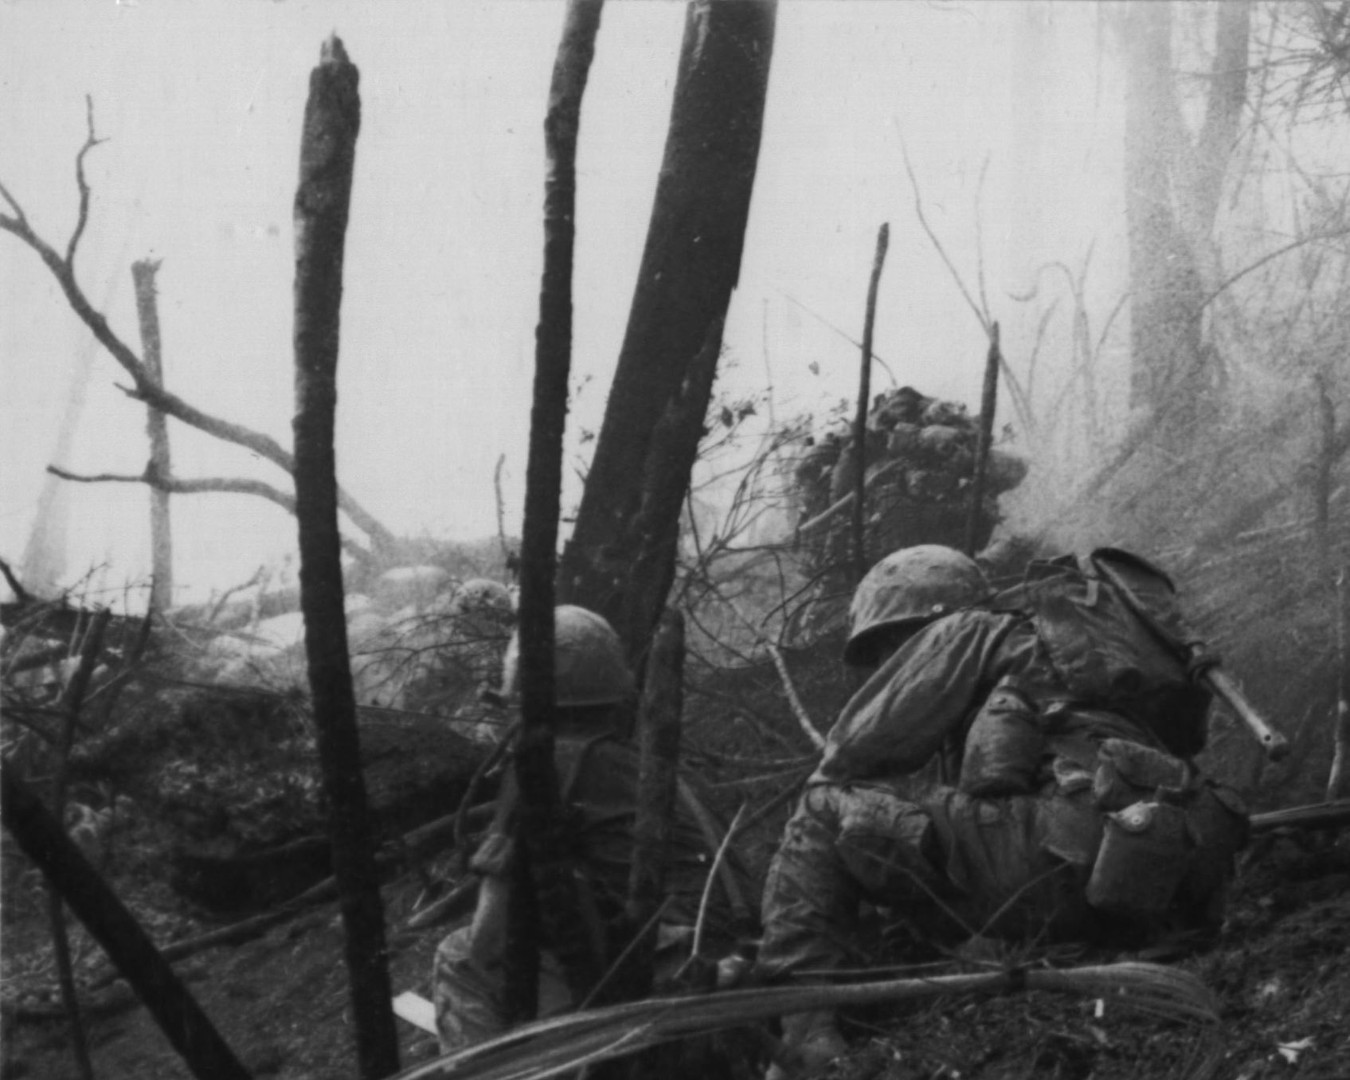 30SEP66. Operation Prairie--Marines of M Company, 3rd Battalion, 4th Marine Regiment, come under grenade attack while taking Hill 484 near the demilitarized zone.  Source: National Archives photo no. 26387371